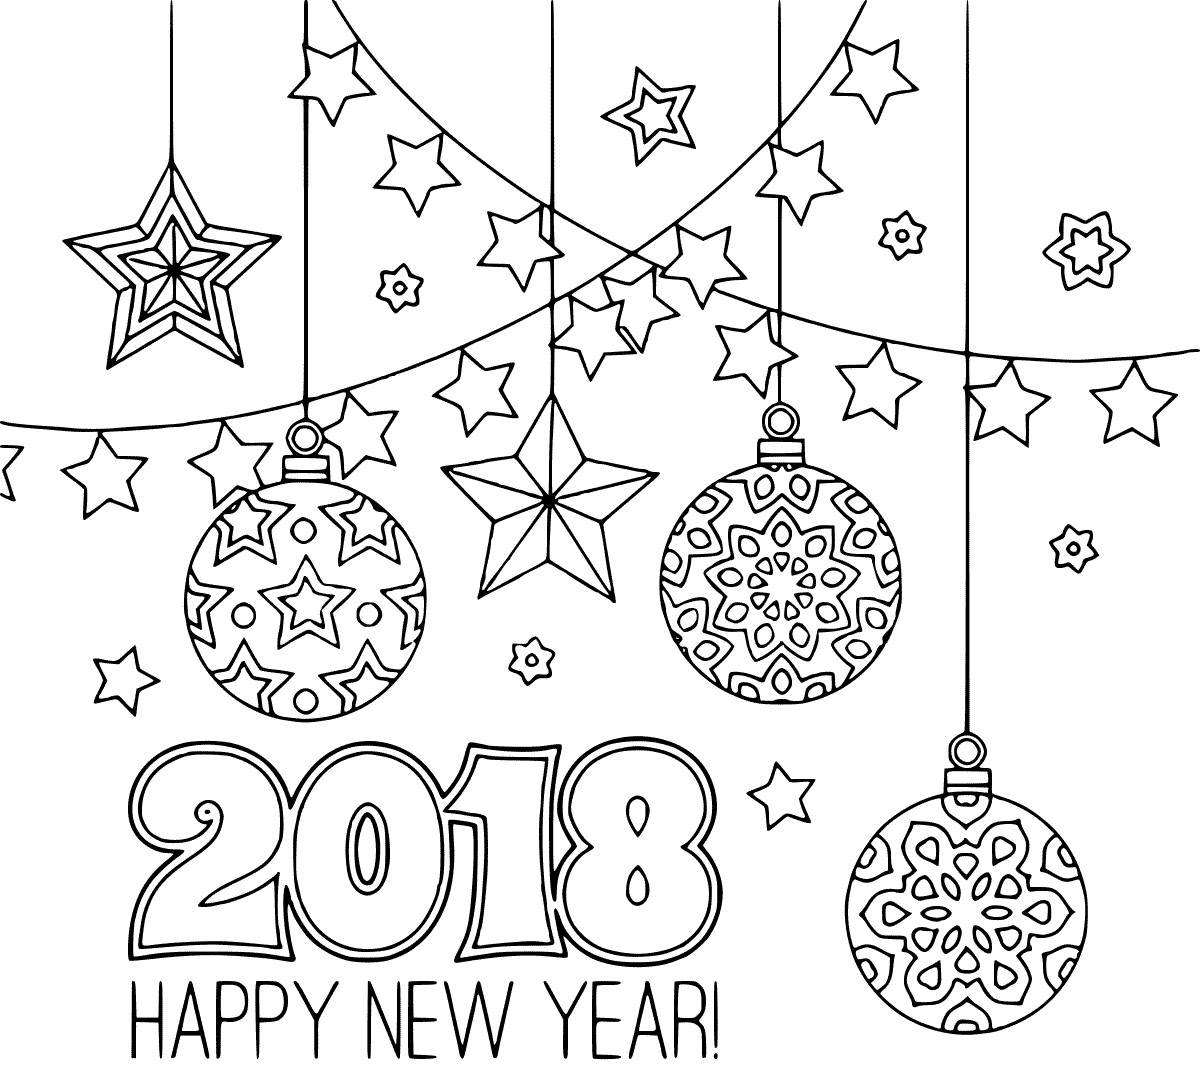 Printable New Year 2018 Coloring Pages Congratulations